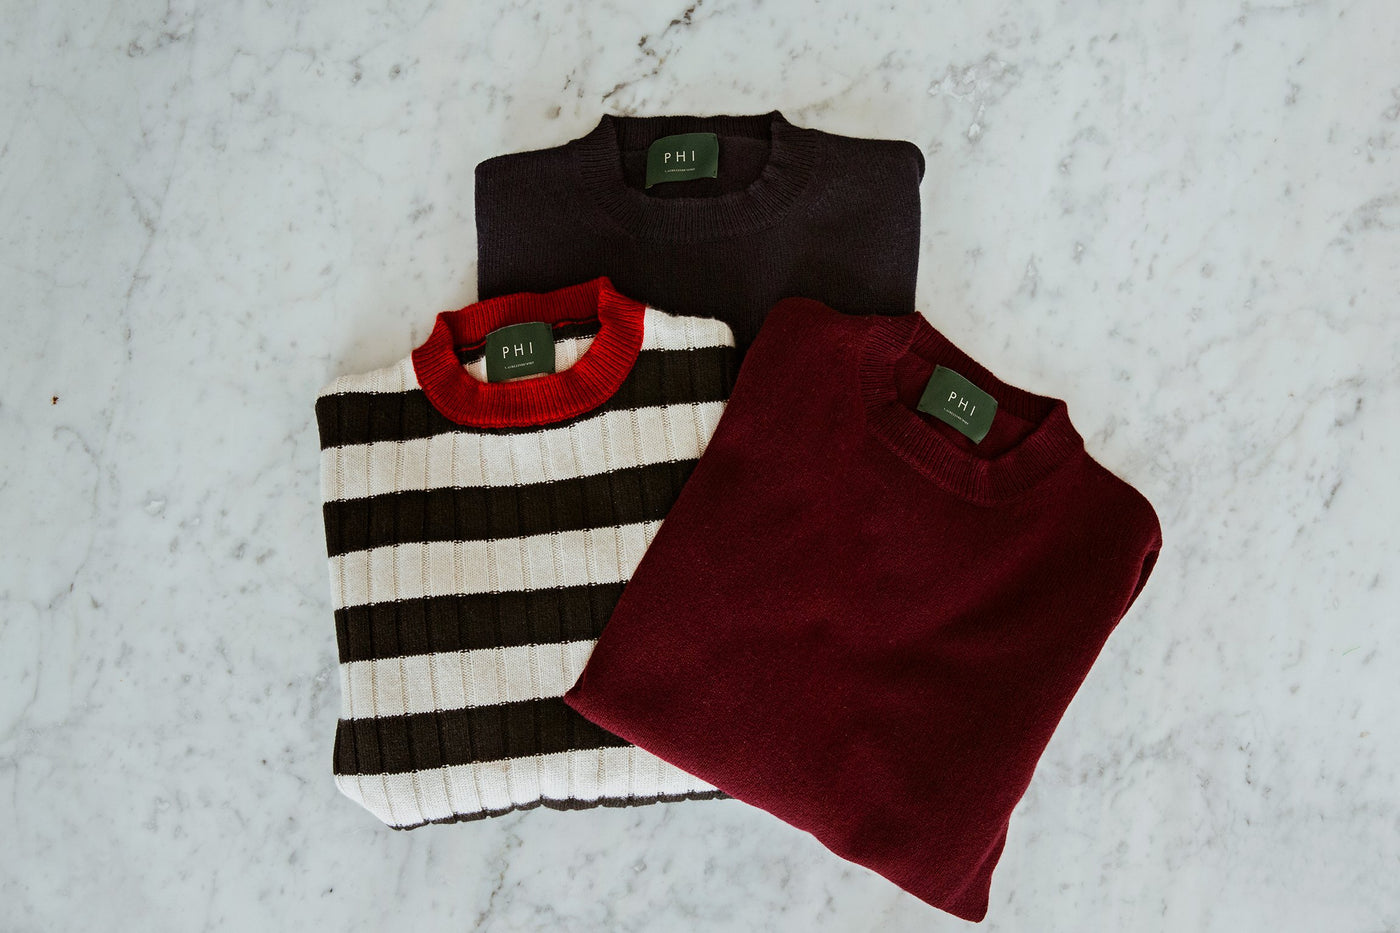 Sustainable Knitwear PHI Burgundy Black cashmere Sweaters